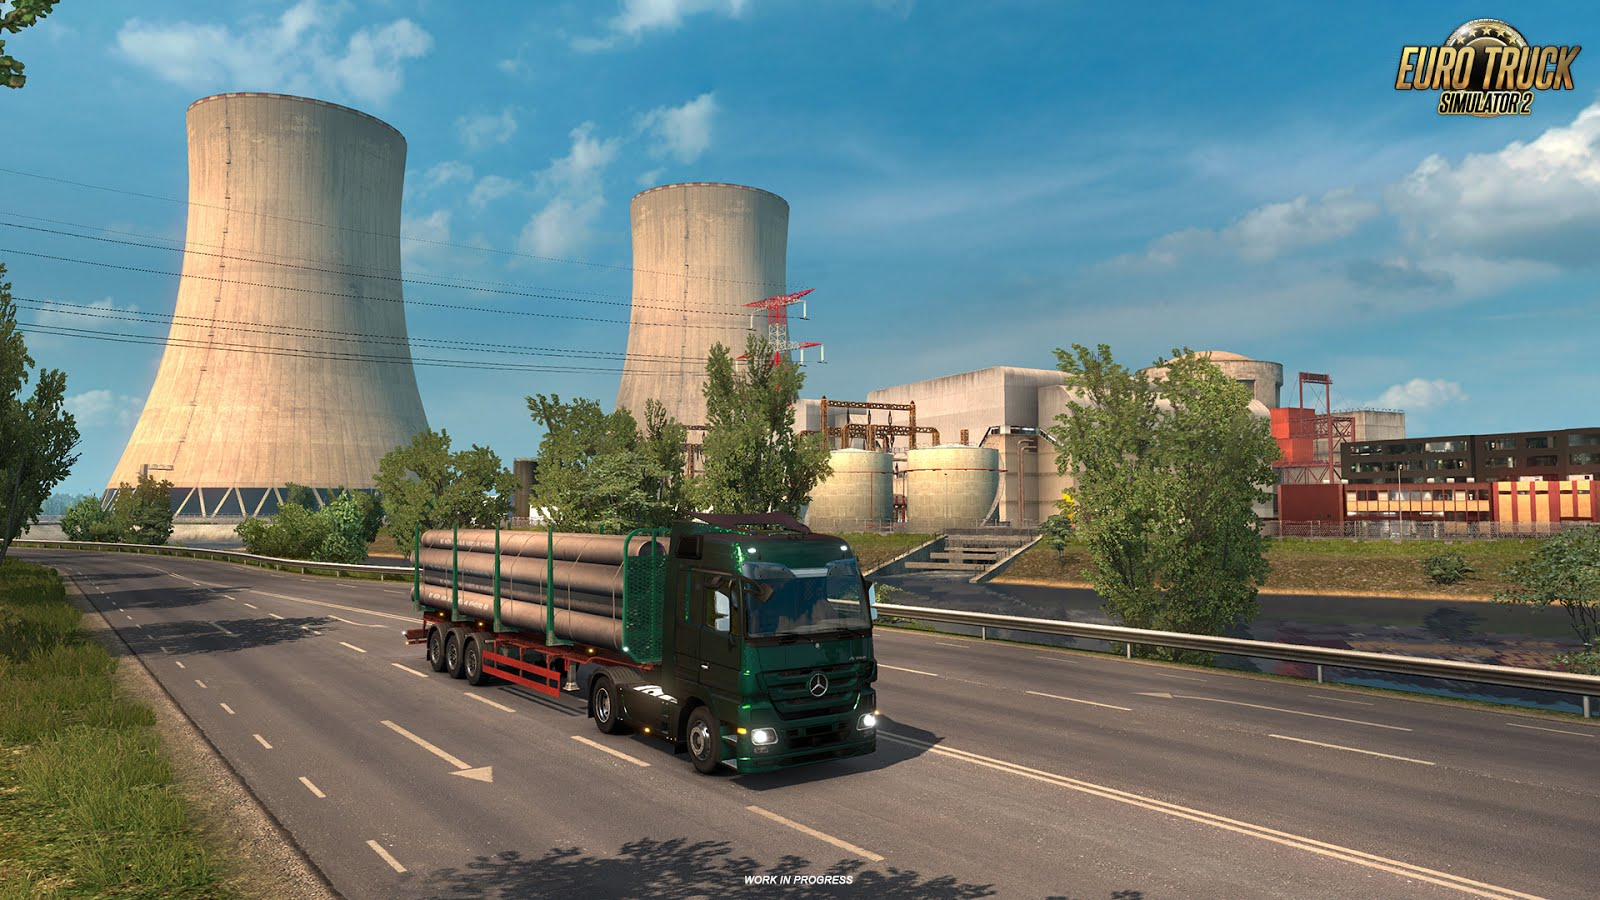 thailand's nuclear power plant Managing spent fuel from nuclear power reactors 3 in a few countries, the fuel is sent to a reprocessing plant, where the fuel is dissolved and the plutonium and.